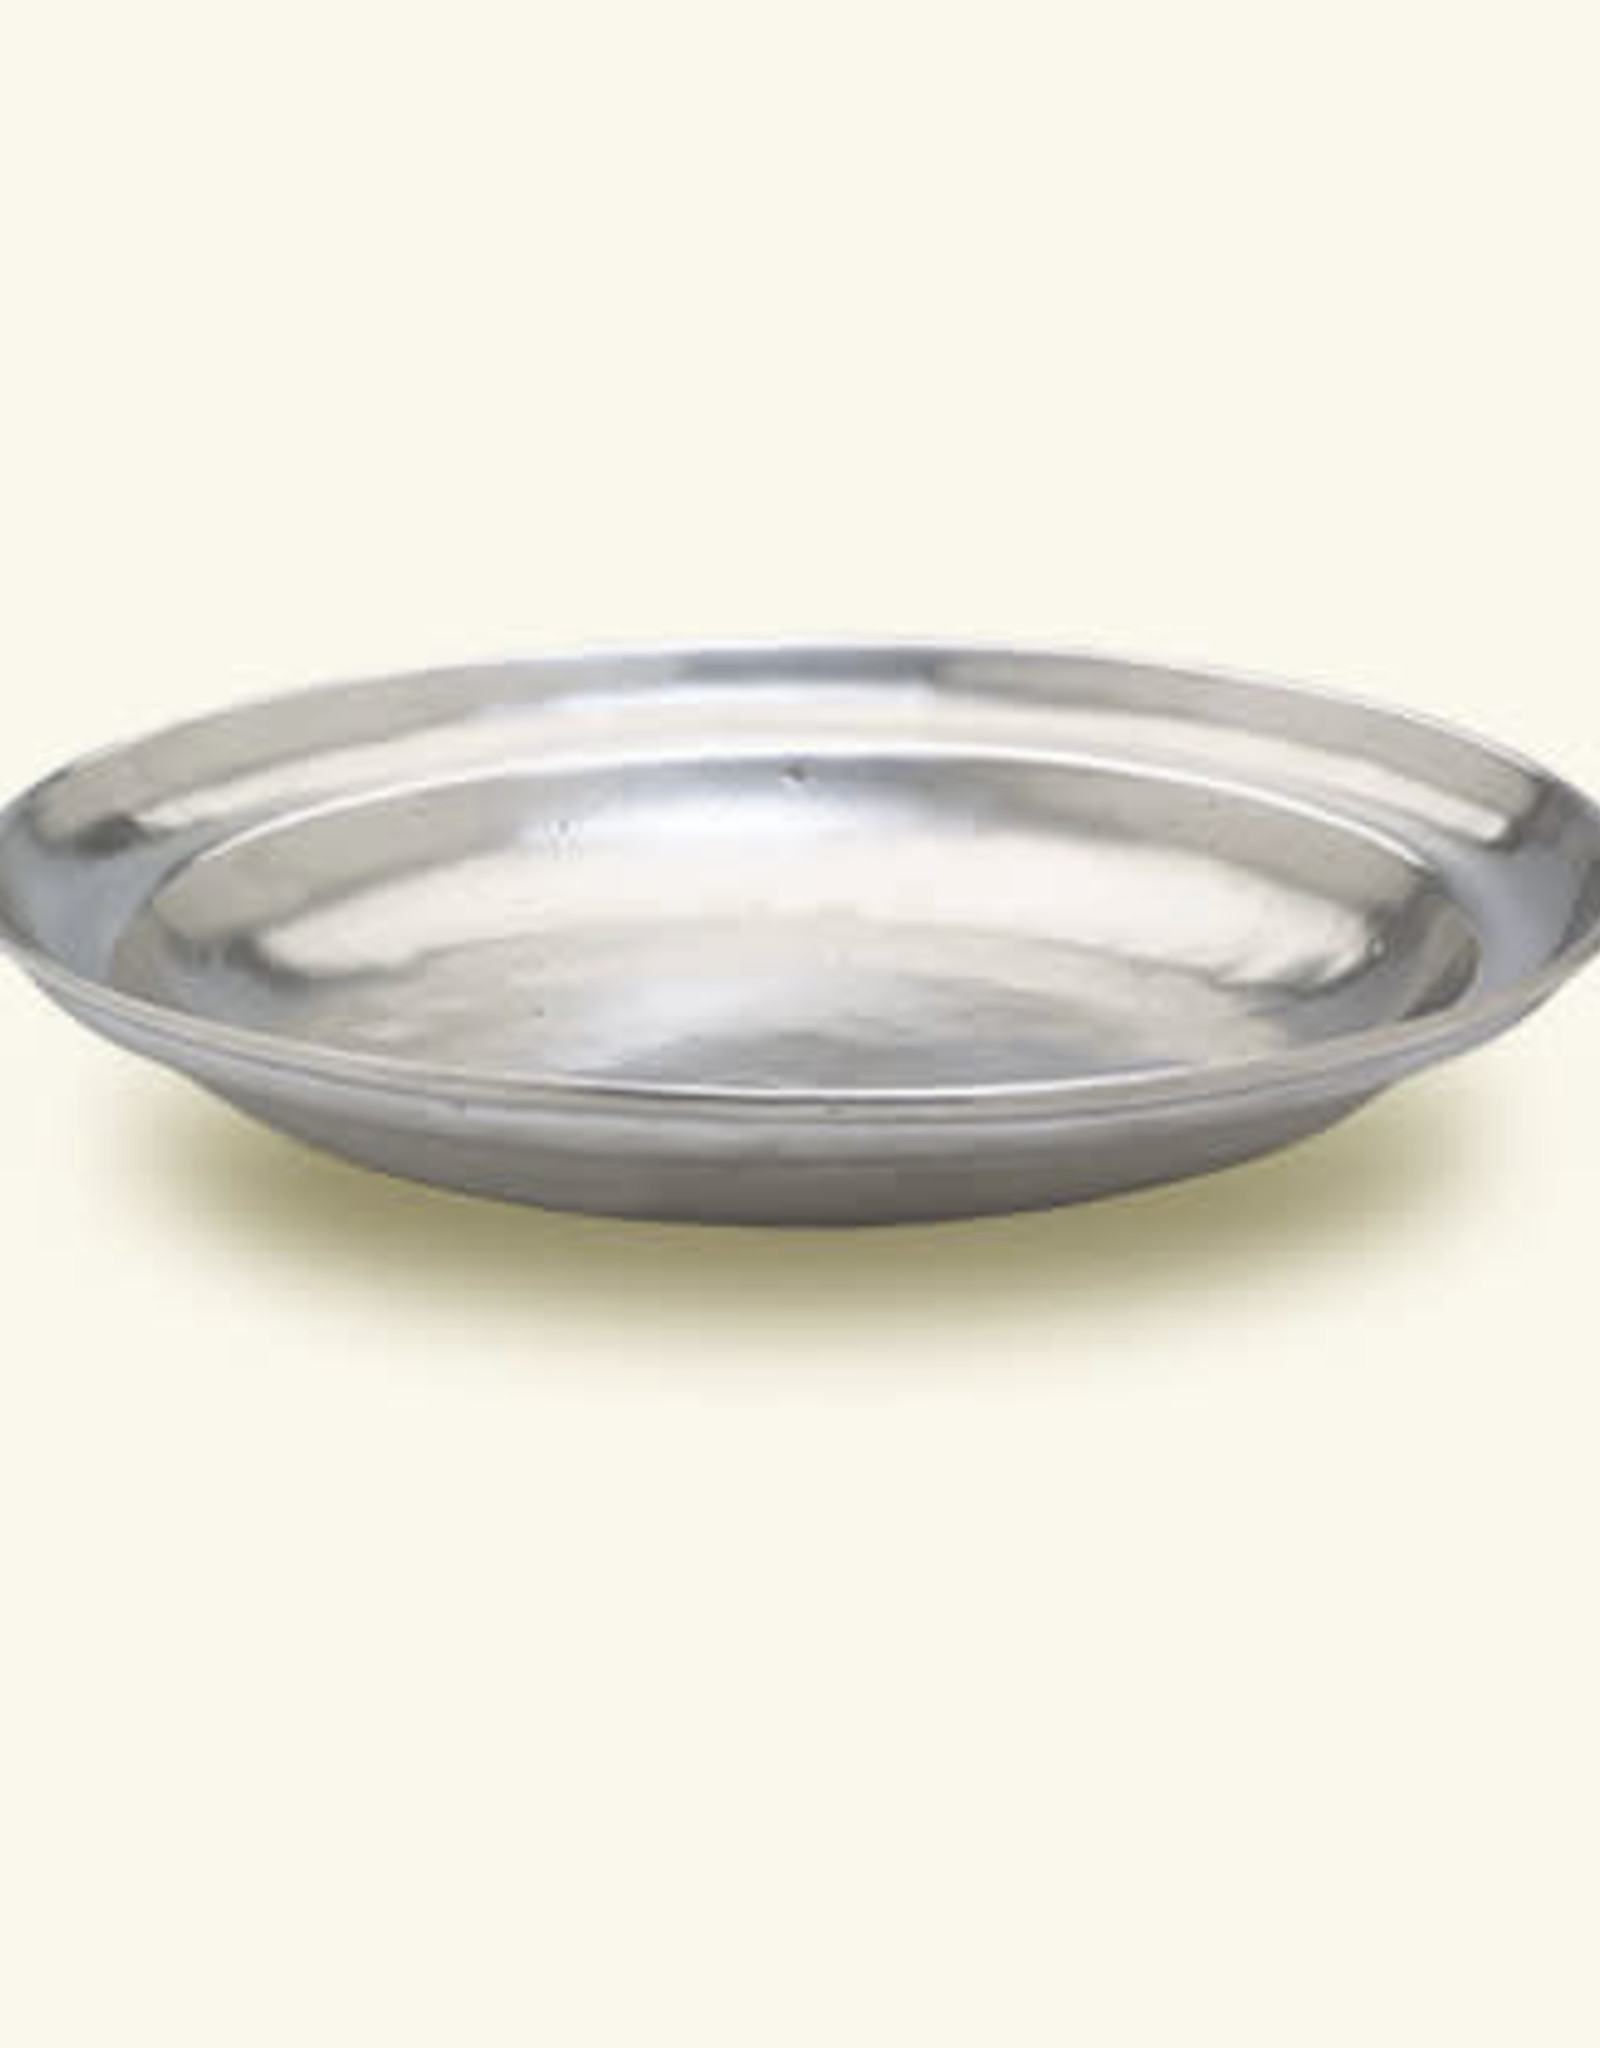 Home Round, low bowl, scroll handles